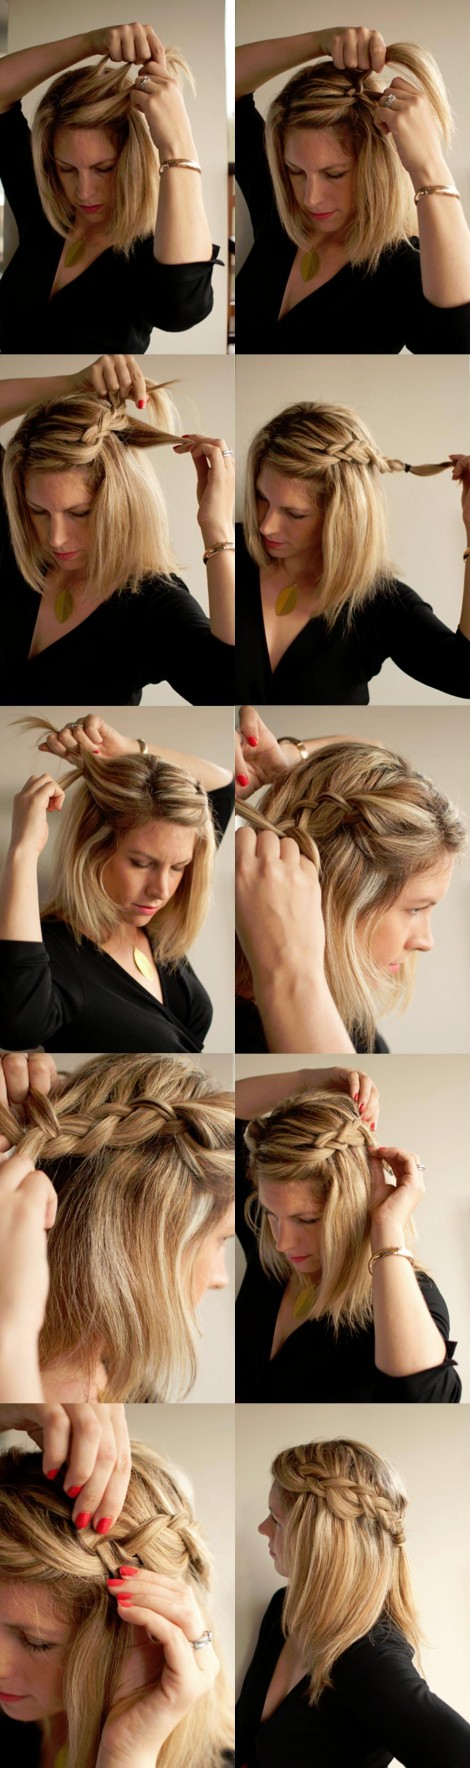 13-Backwards-or-inside-out-braid-Tutorial